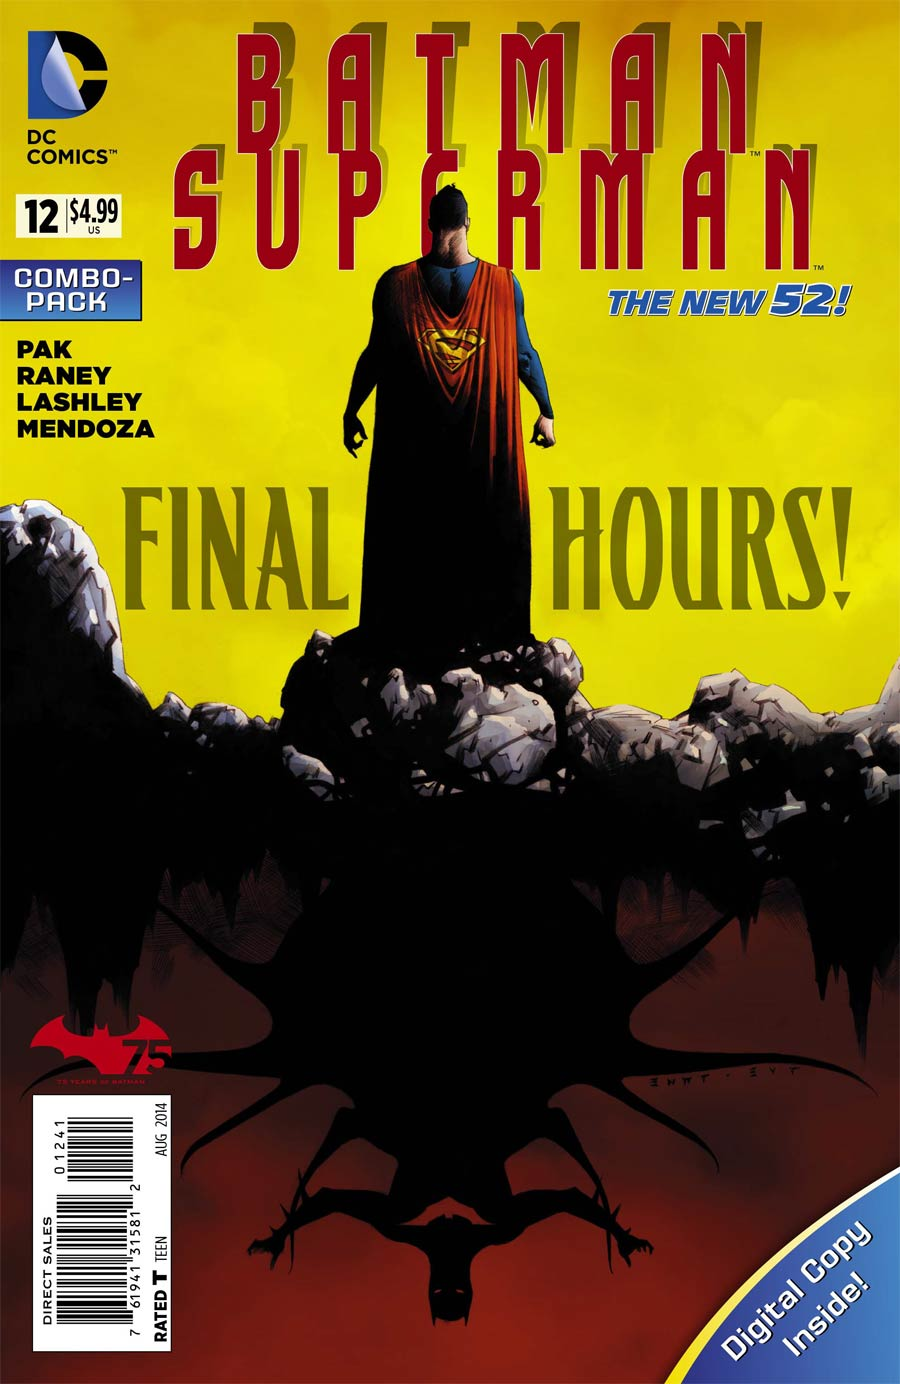 Batman Superman #12 Cover D Combo Pack Without Polybag